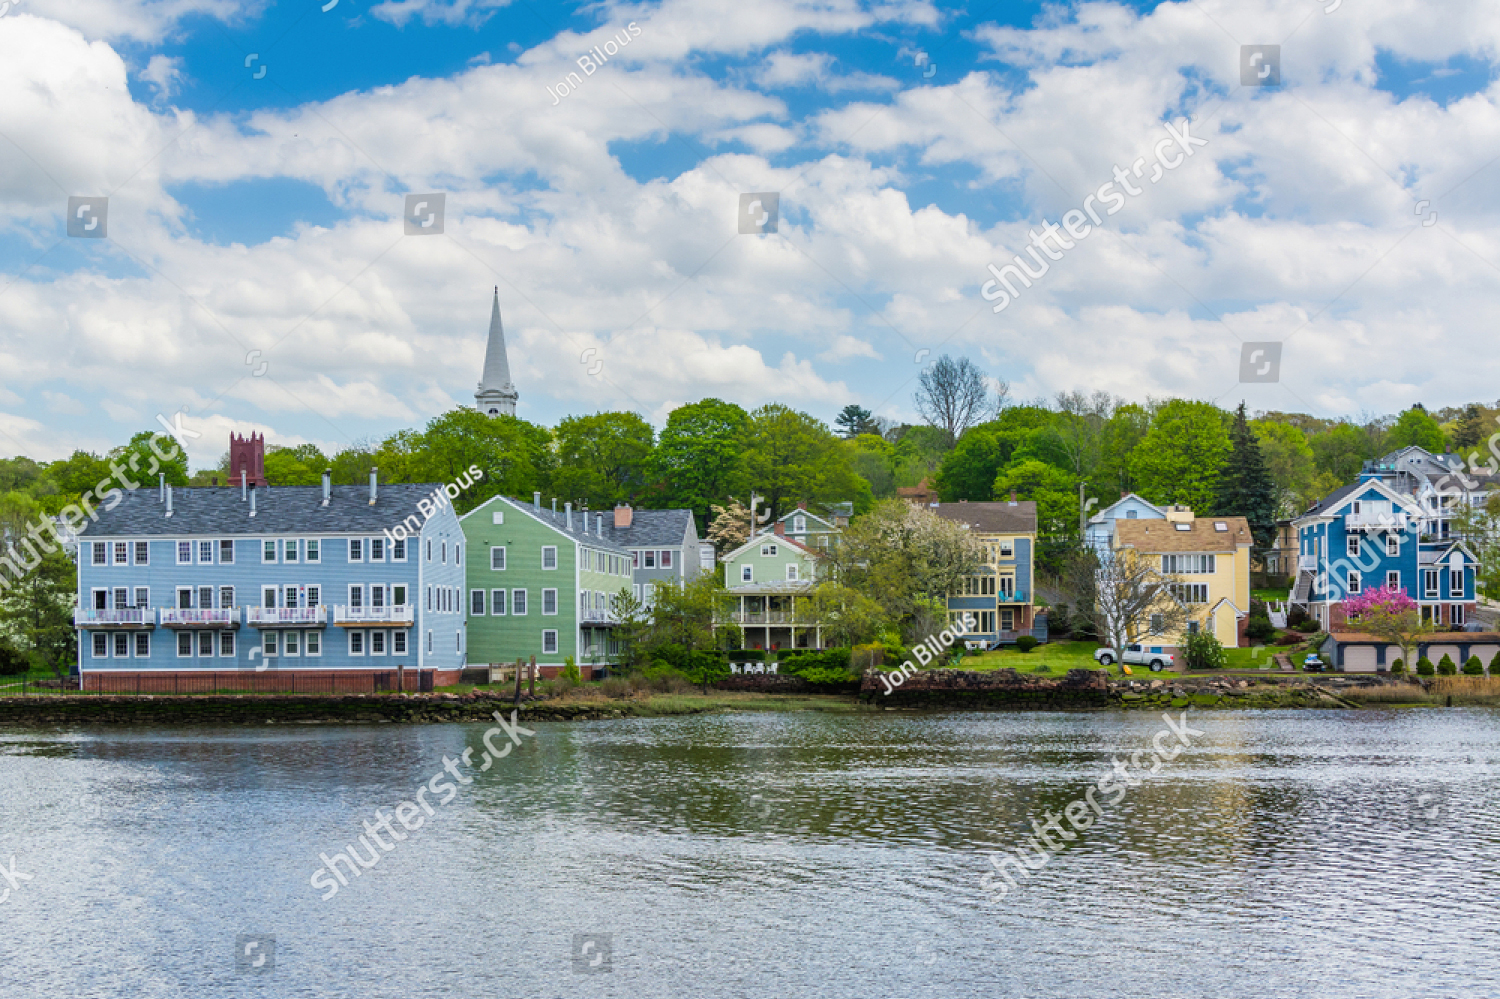 quinnipiac-river-in-fair-haven-.jpg